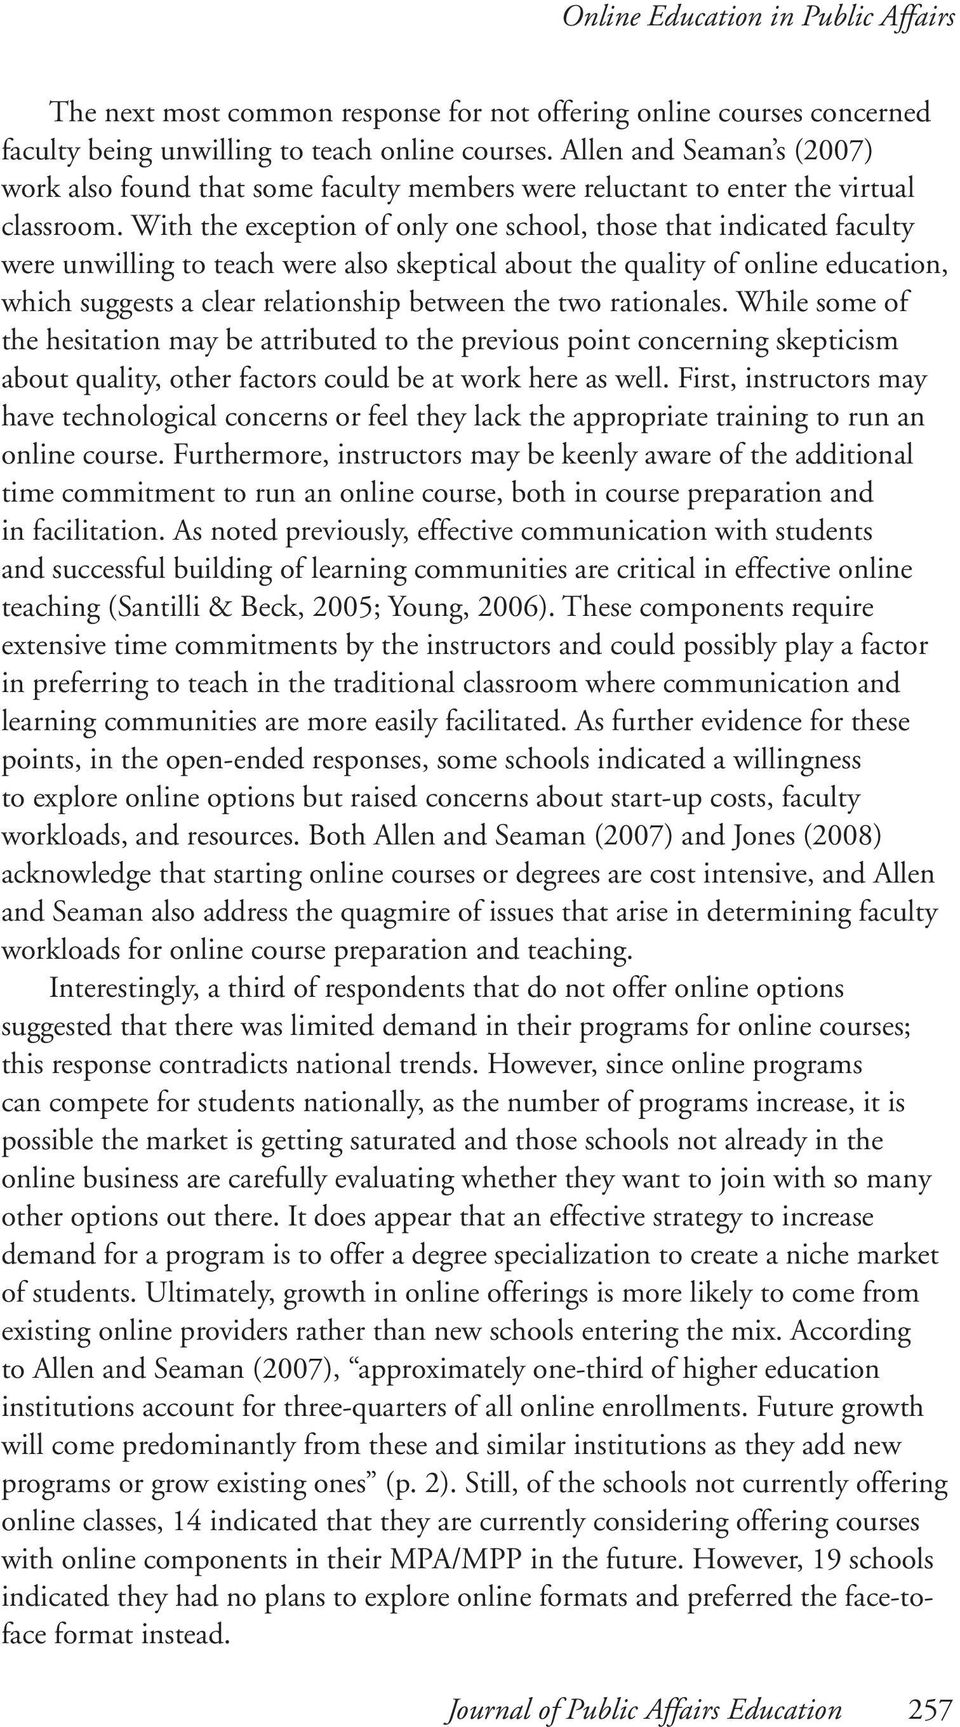 With the exception of only one school, those that indicated faculty were unwilling to teach were also skeptical about the quality of online education, which suggests a clear relationship between the